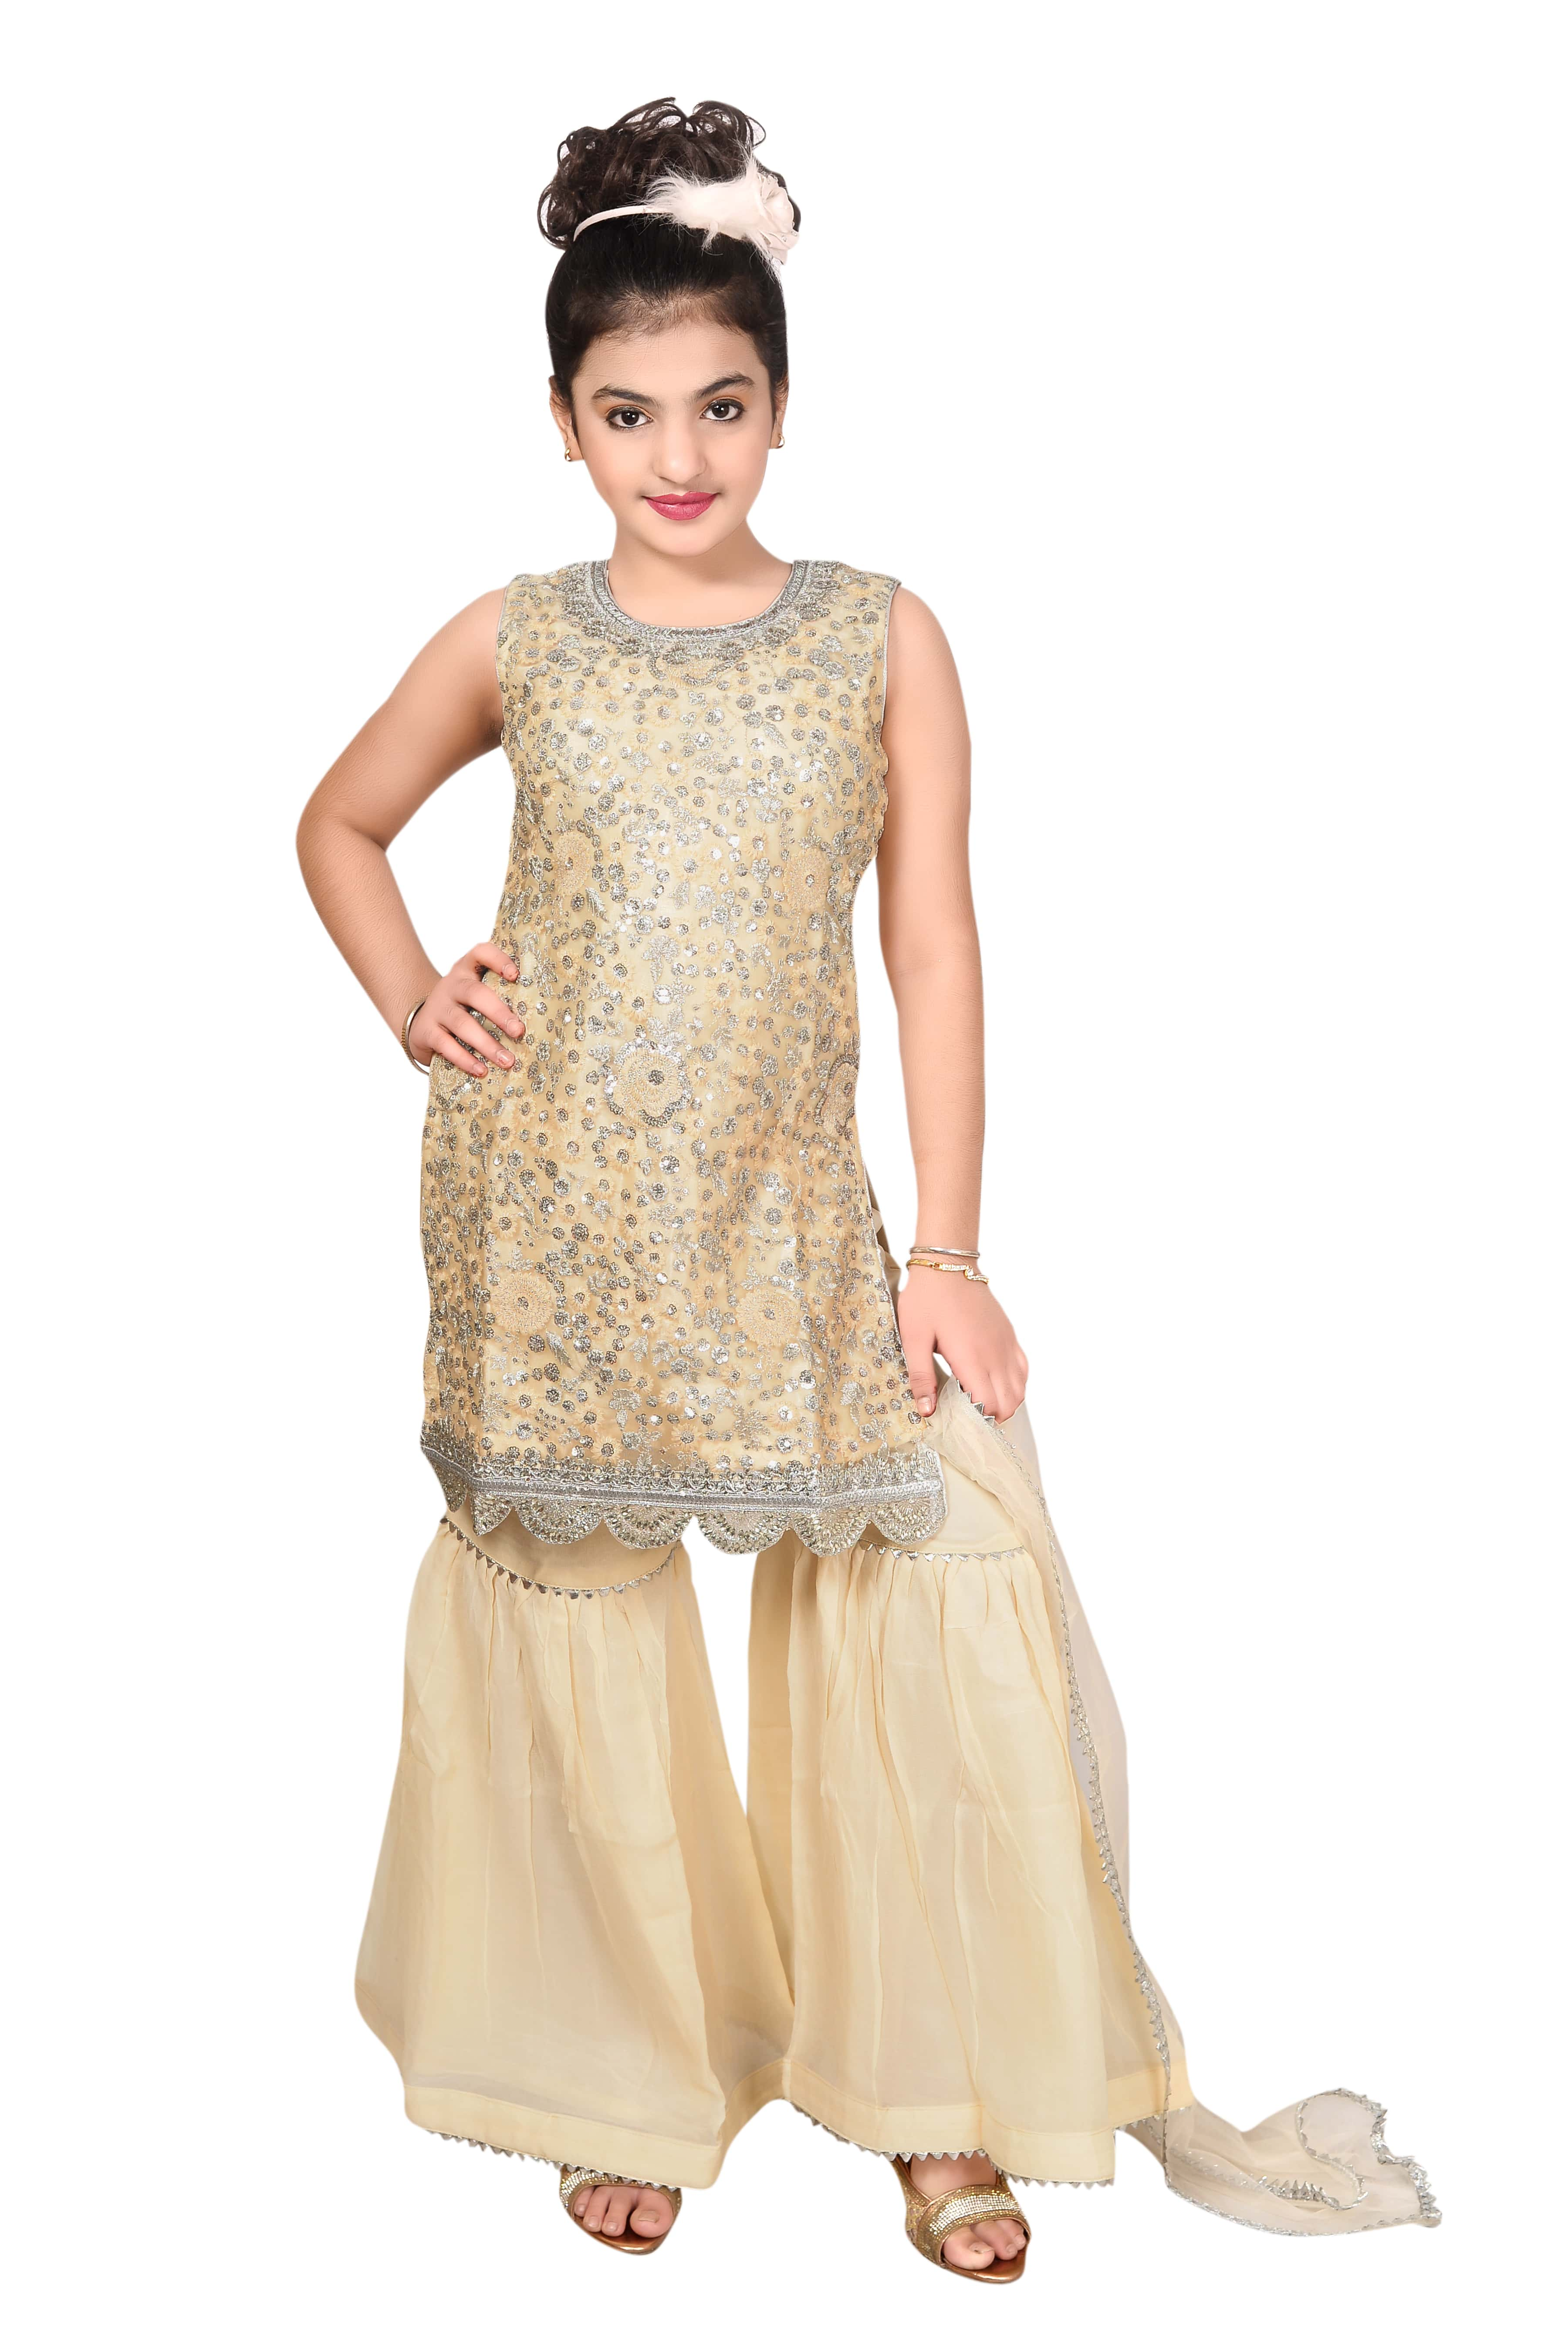 Kids Ethnic Wear In India